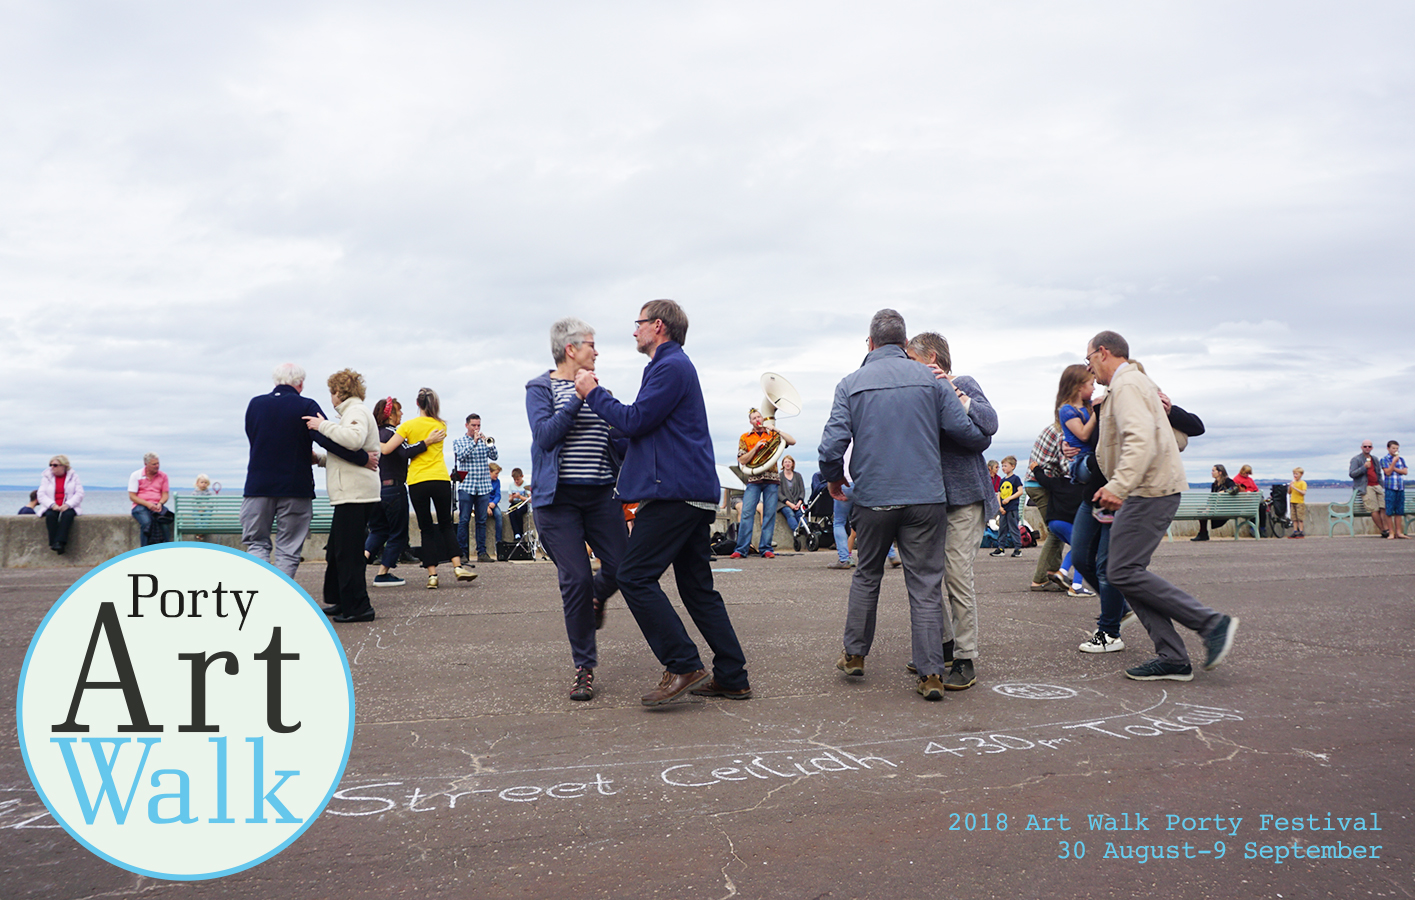 Art Walk Porty arts festival